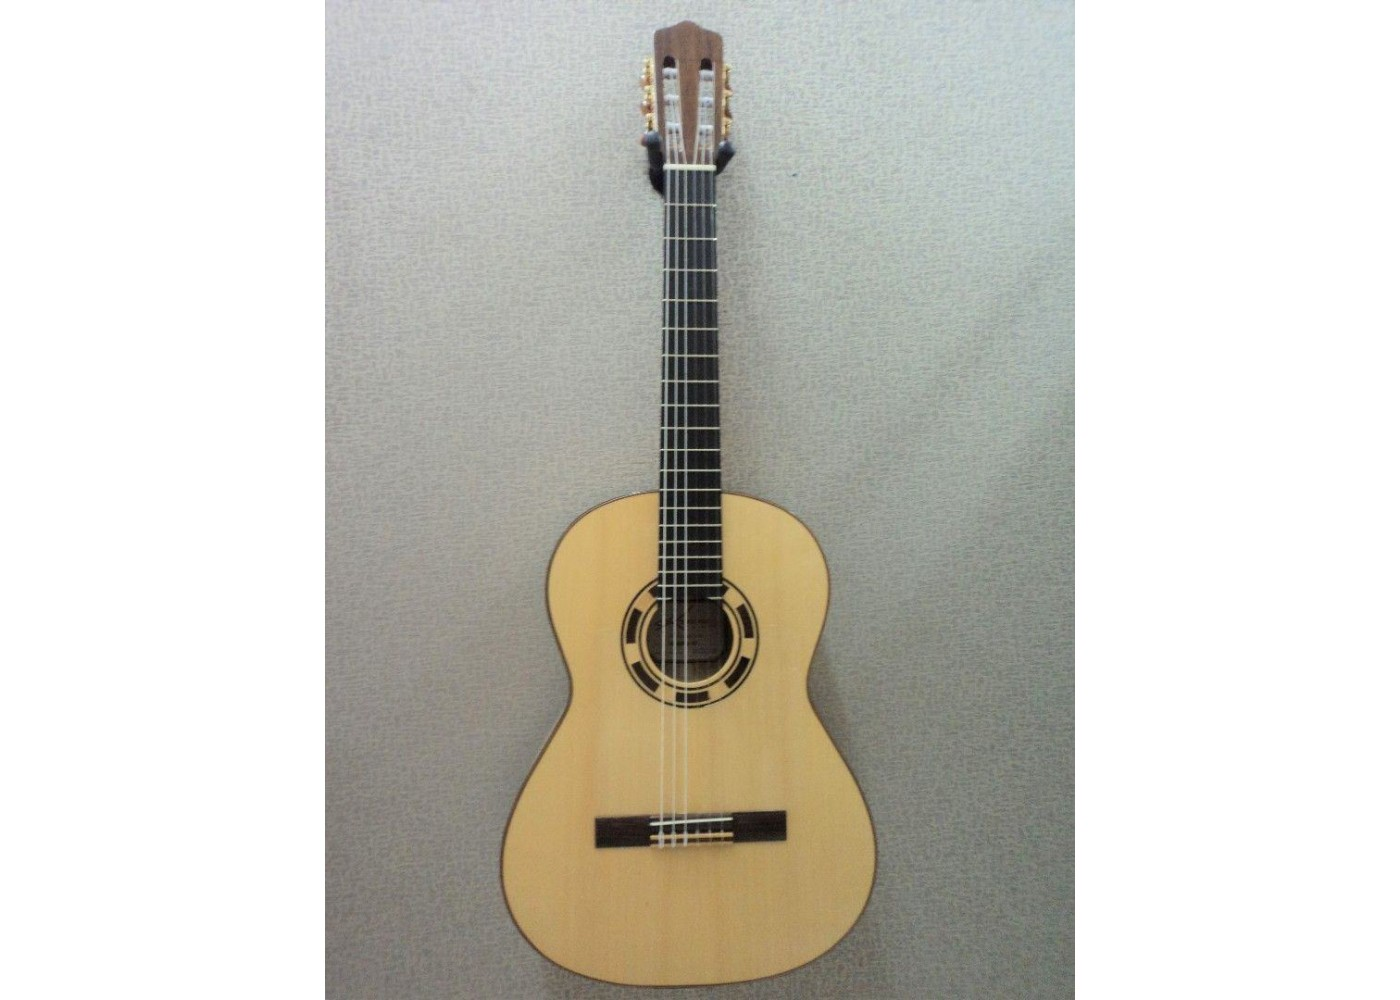 Guitars & Basses Acoustic Electric Guitars Kremona Left Handed Rosa Luna Flamenco Series Acoustic Electric Cutaway Classica